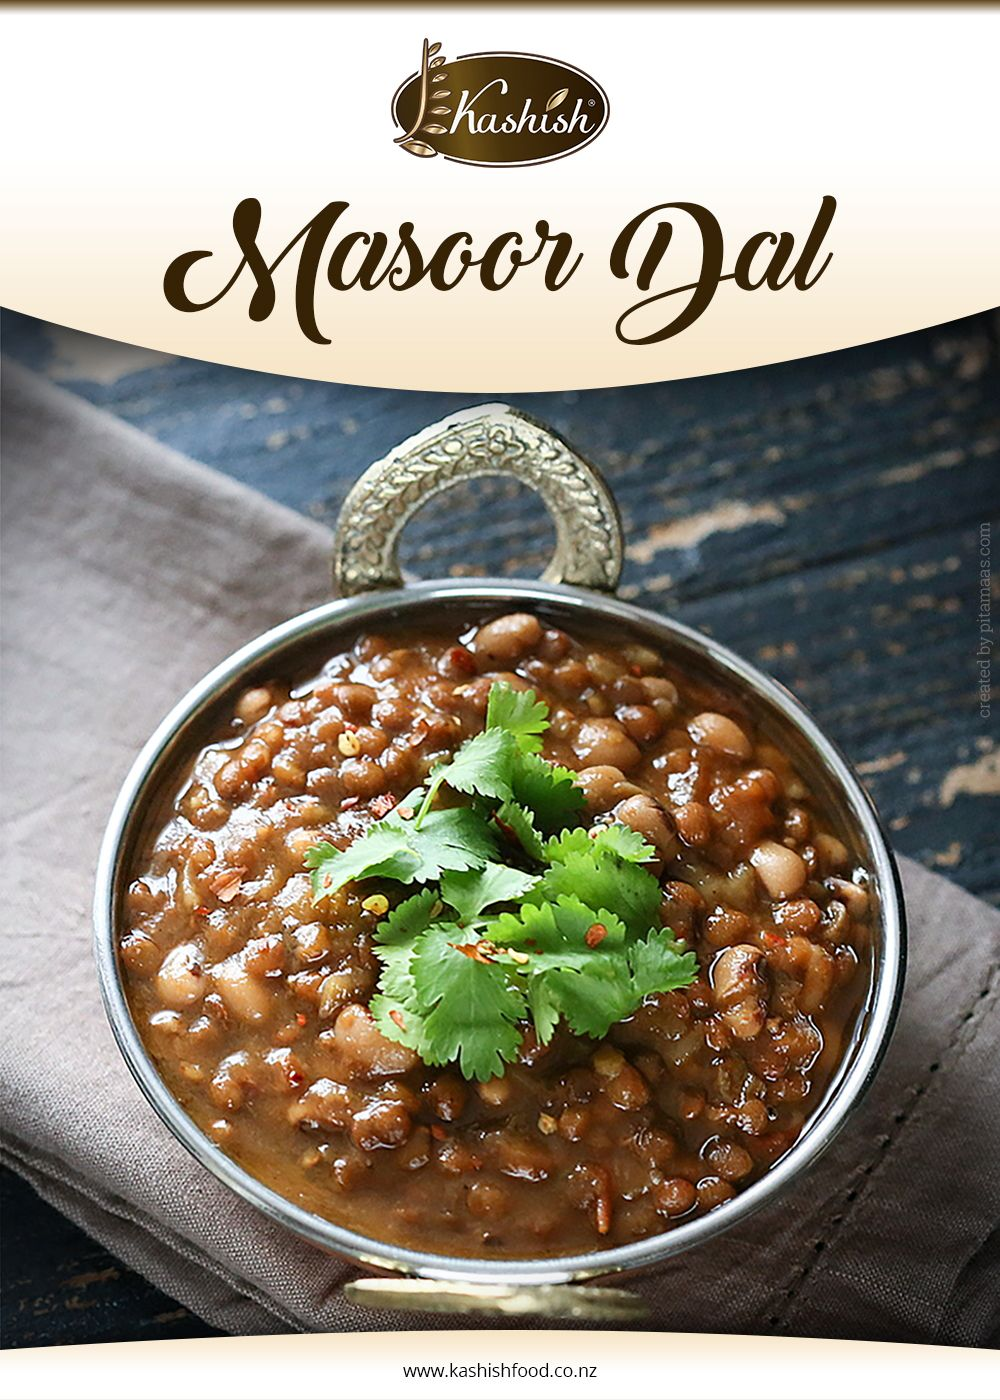 Masoor dal is rich in fiber and iron. It tastes amazing